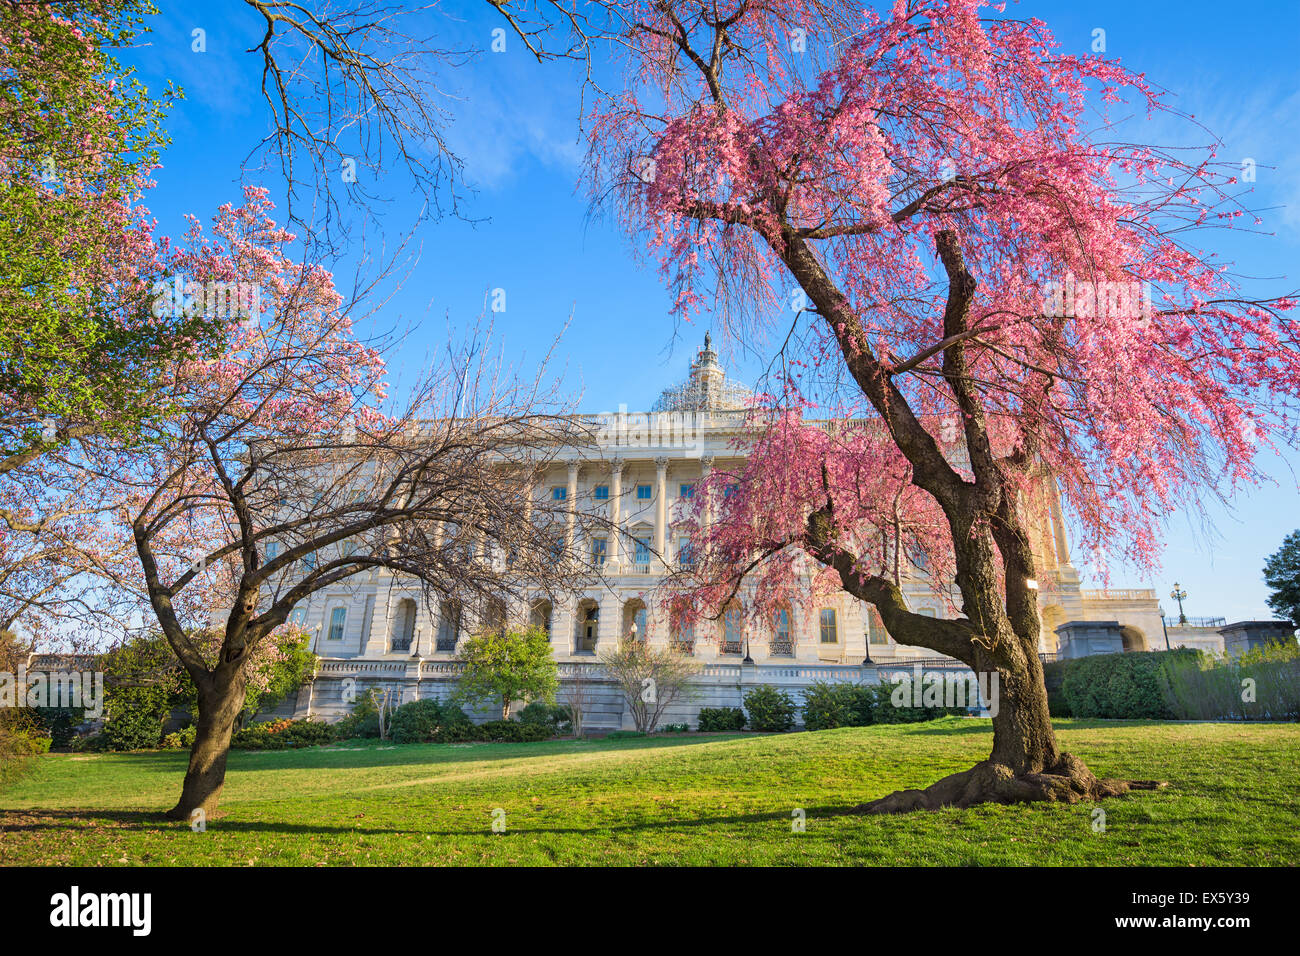 Washington DC Capitol à l'immeuble pendant la saison du printemps. Photo Stock